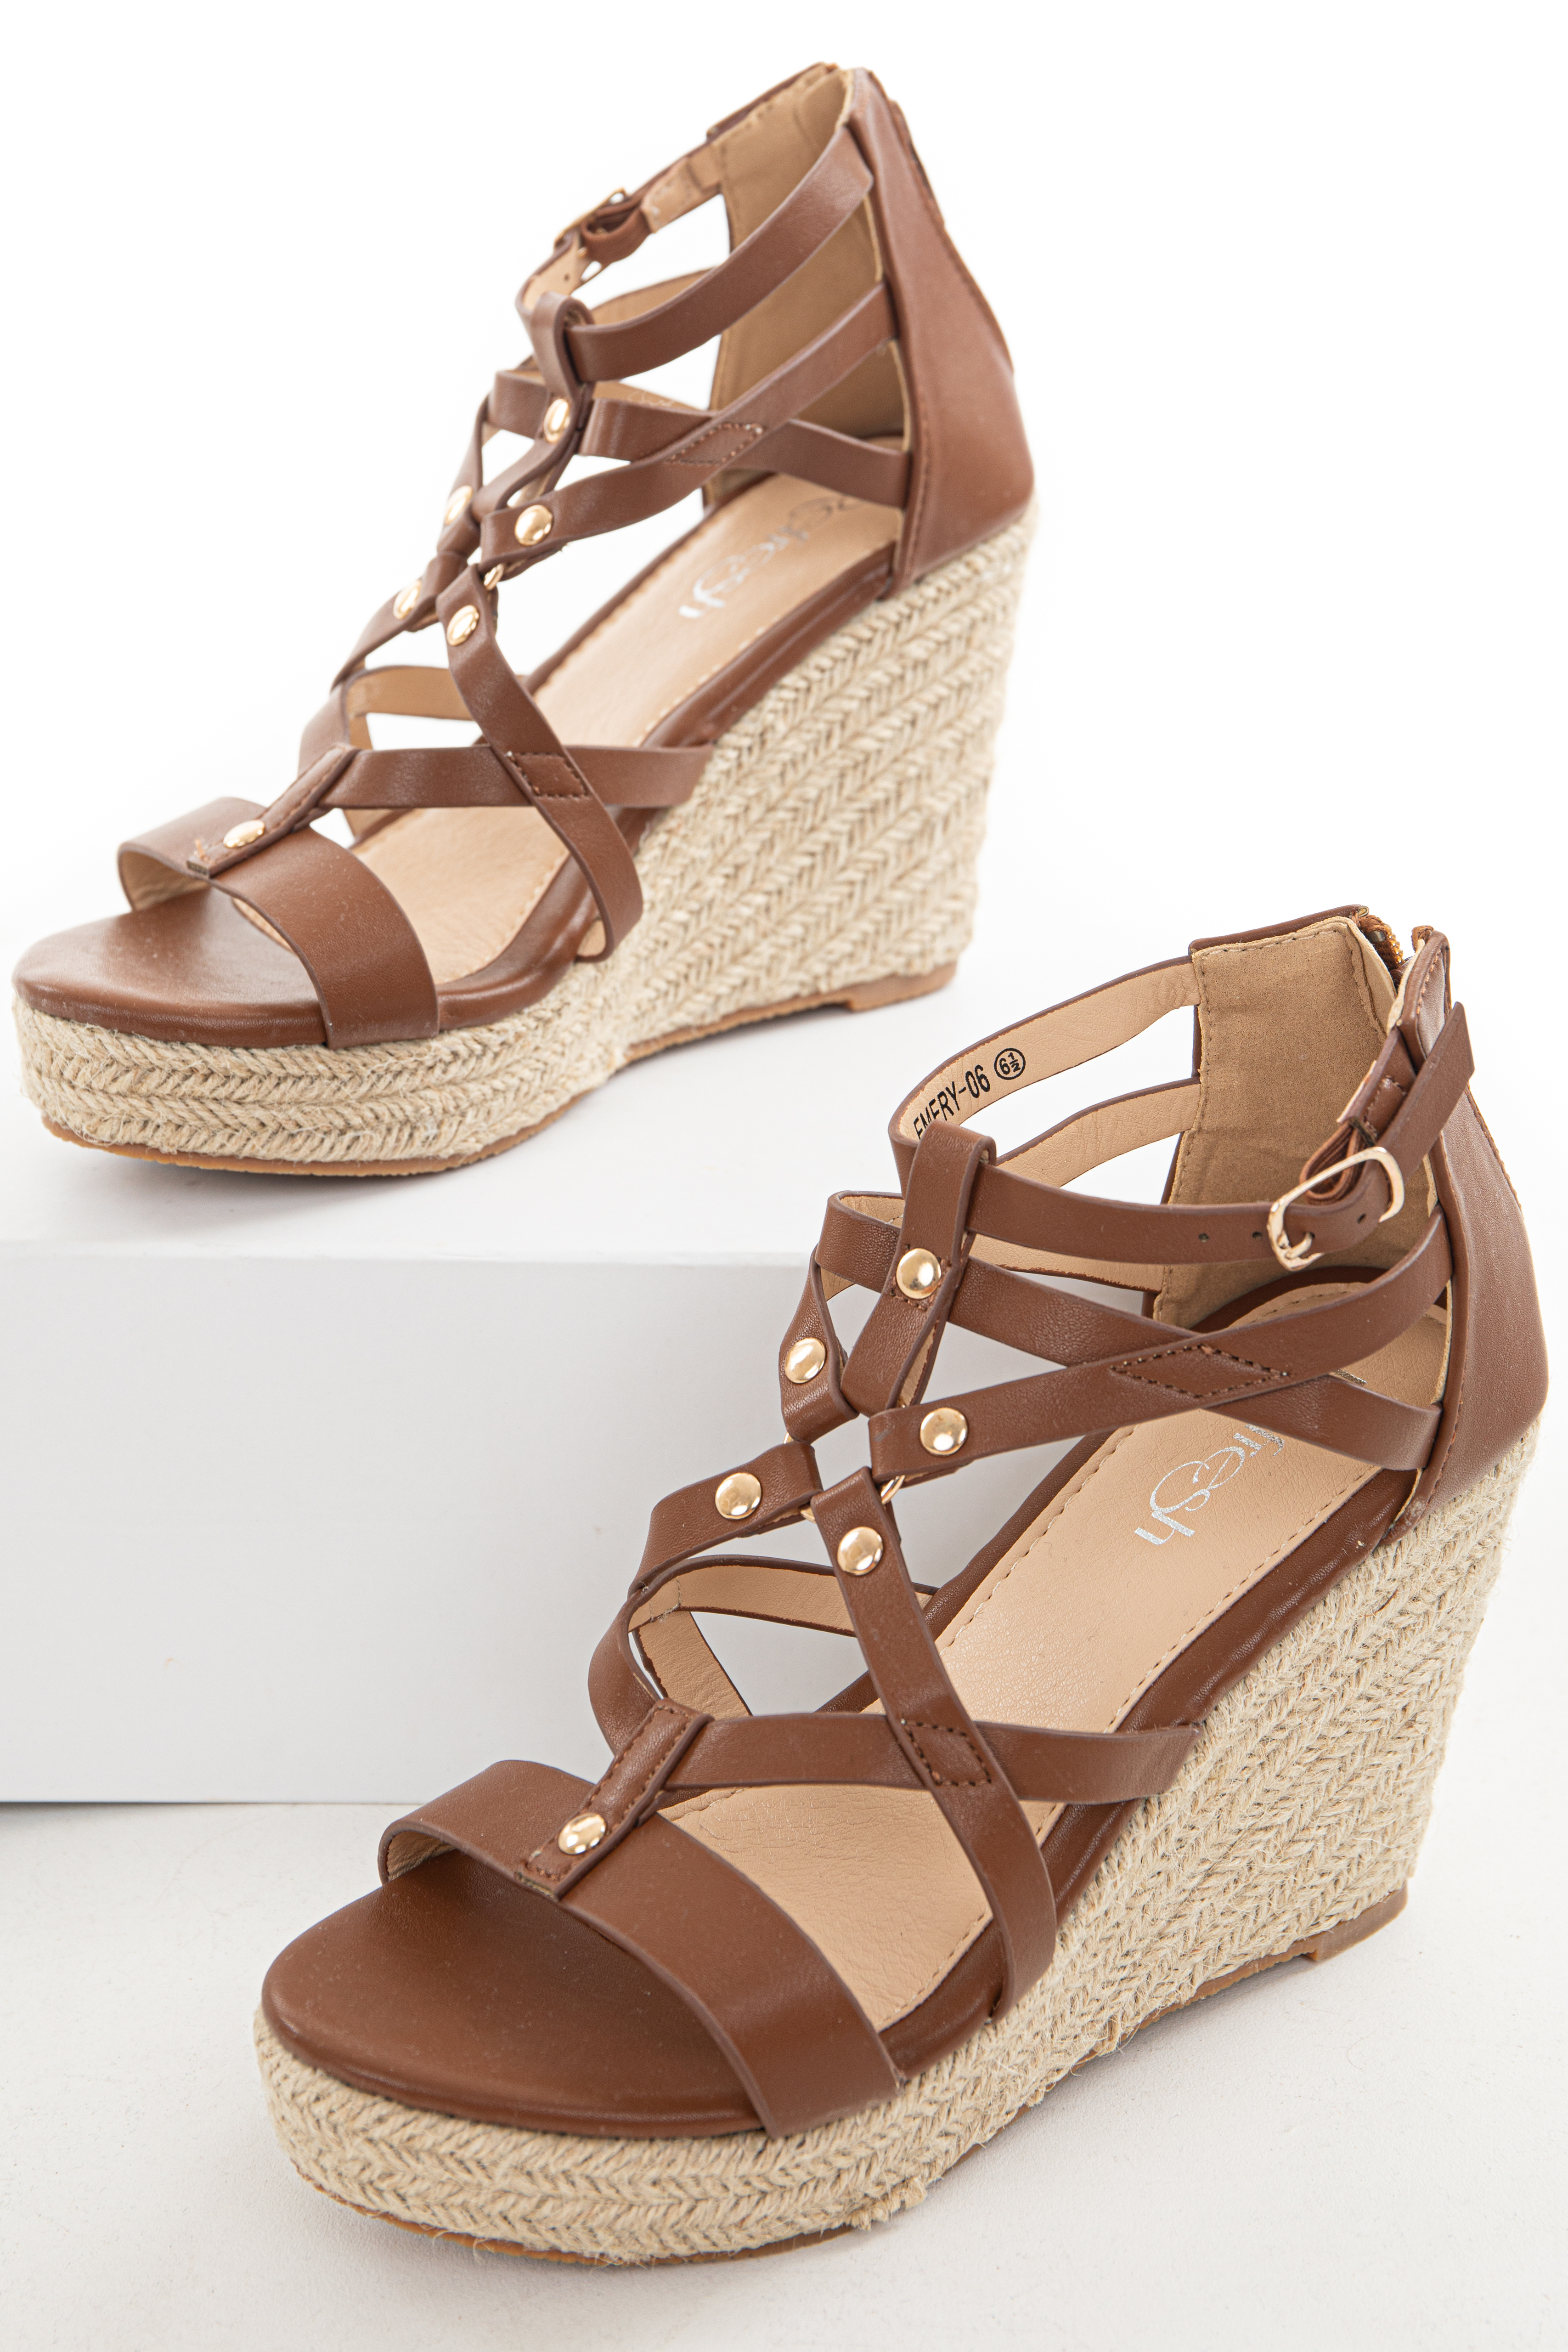 Cinnamon Strappy Espadrille Wedges with Studs